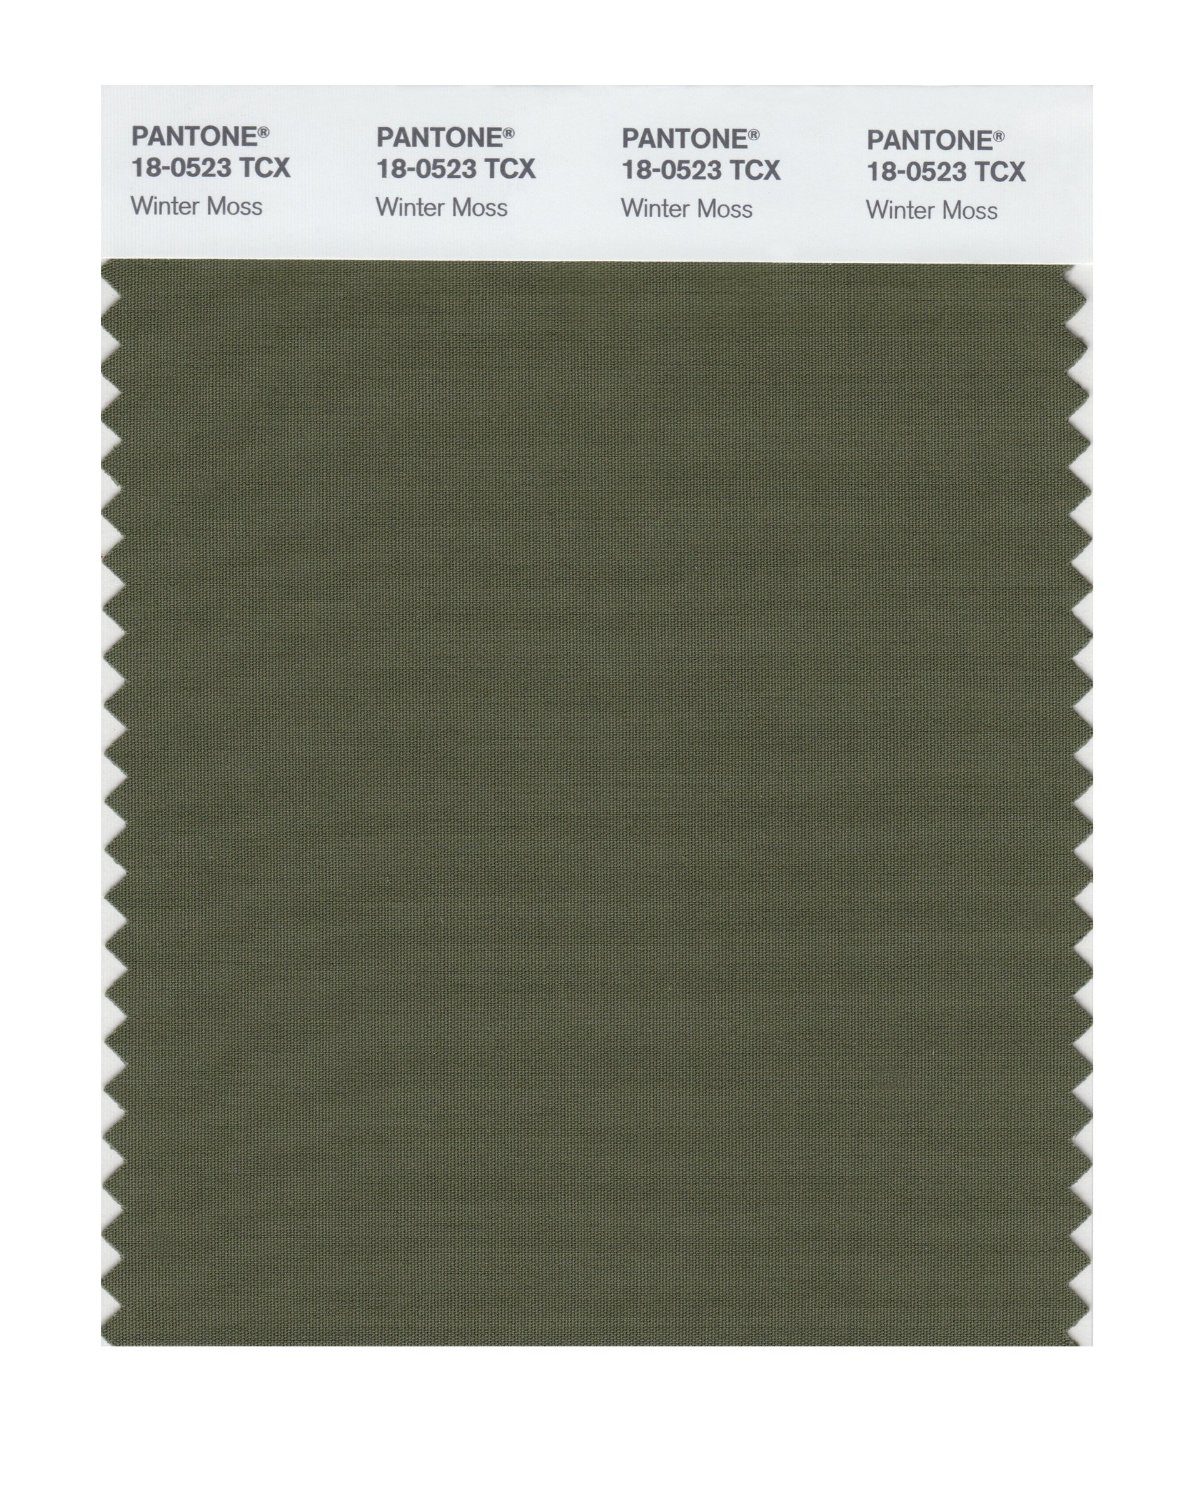 Pantone Smart Swatch 18-0523 Winter Moss